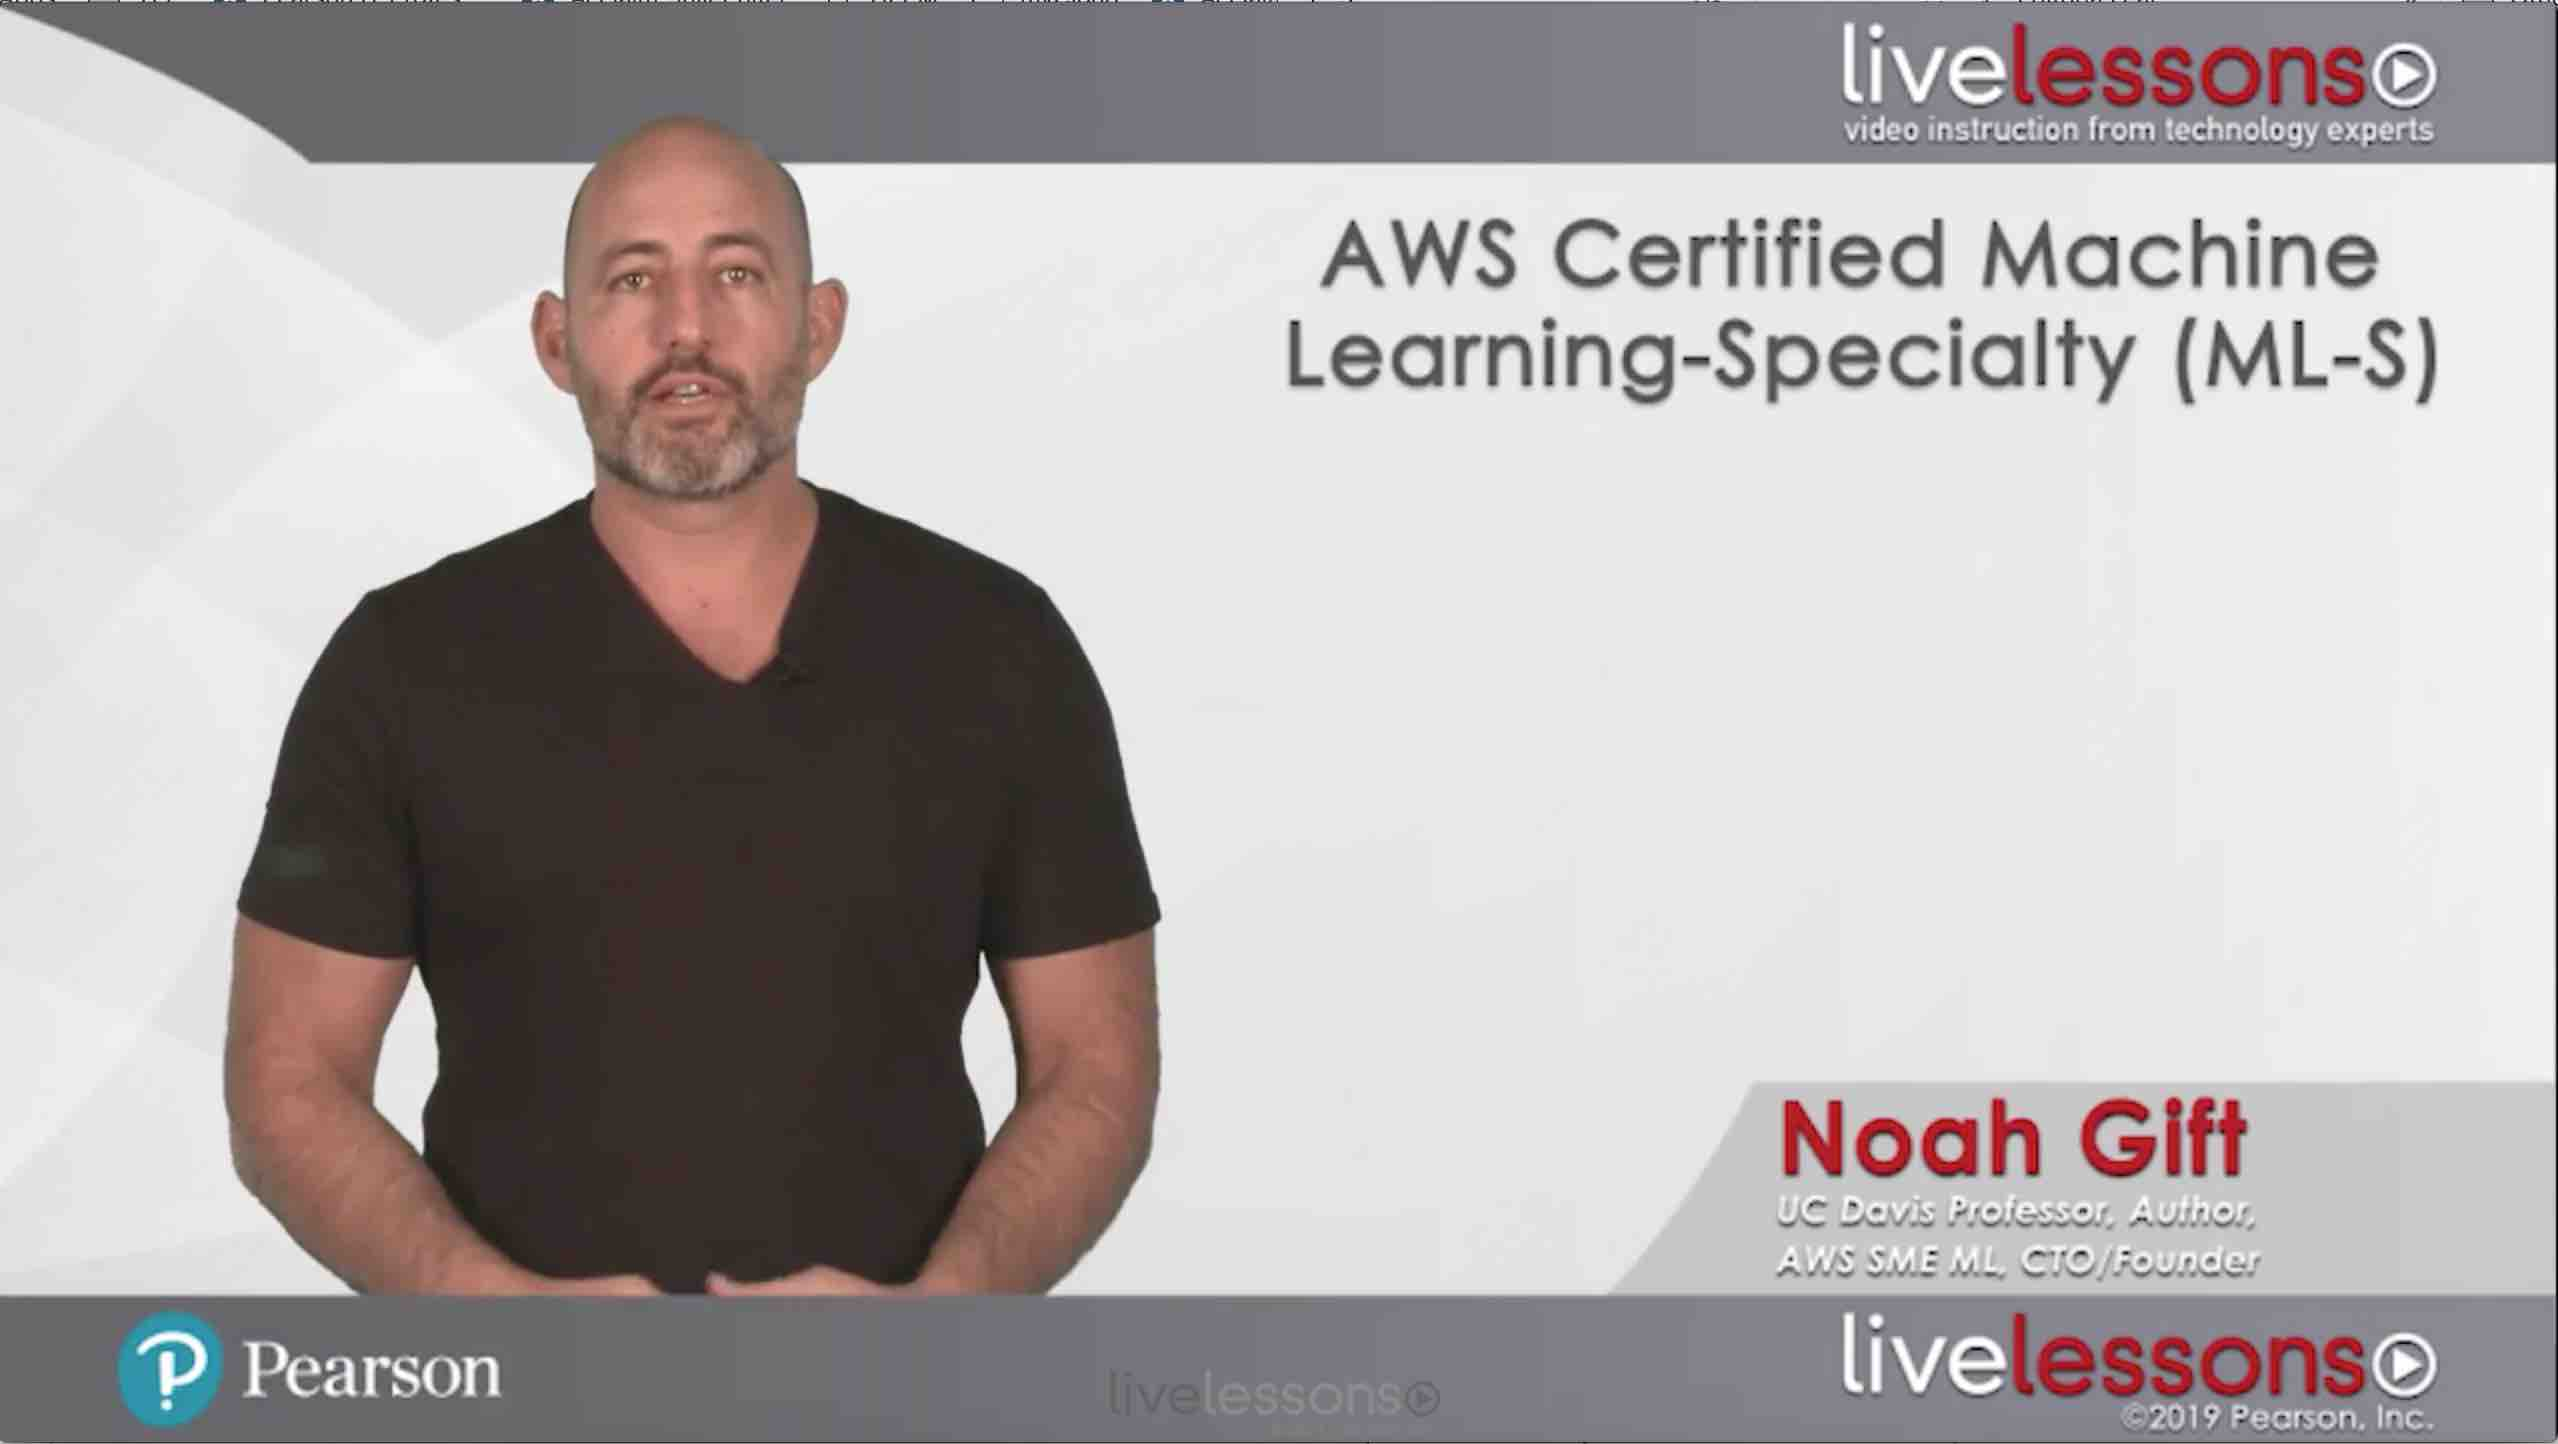 AWS Certified Machine Learning-Specialty (ML-S) AWS Certified Machine Learning-Specialty (ML-S)